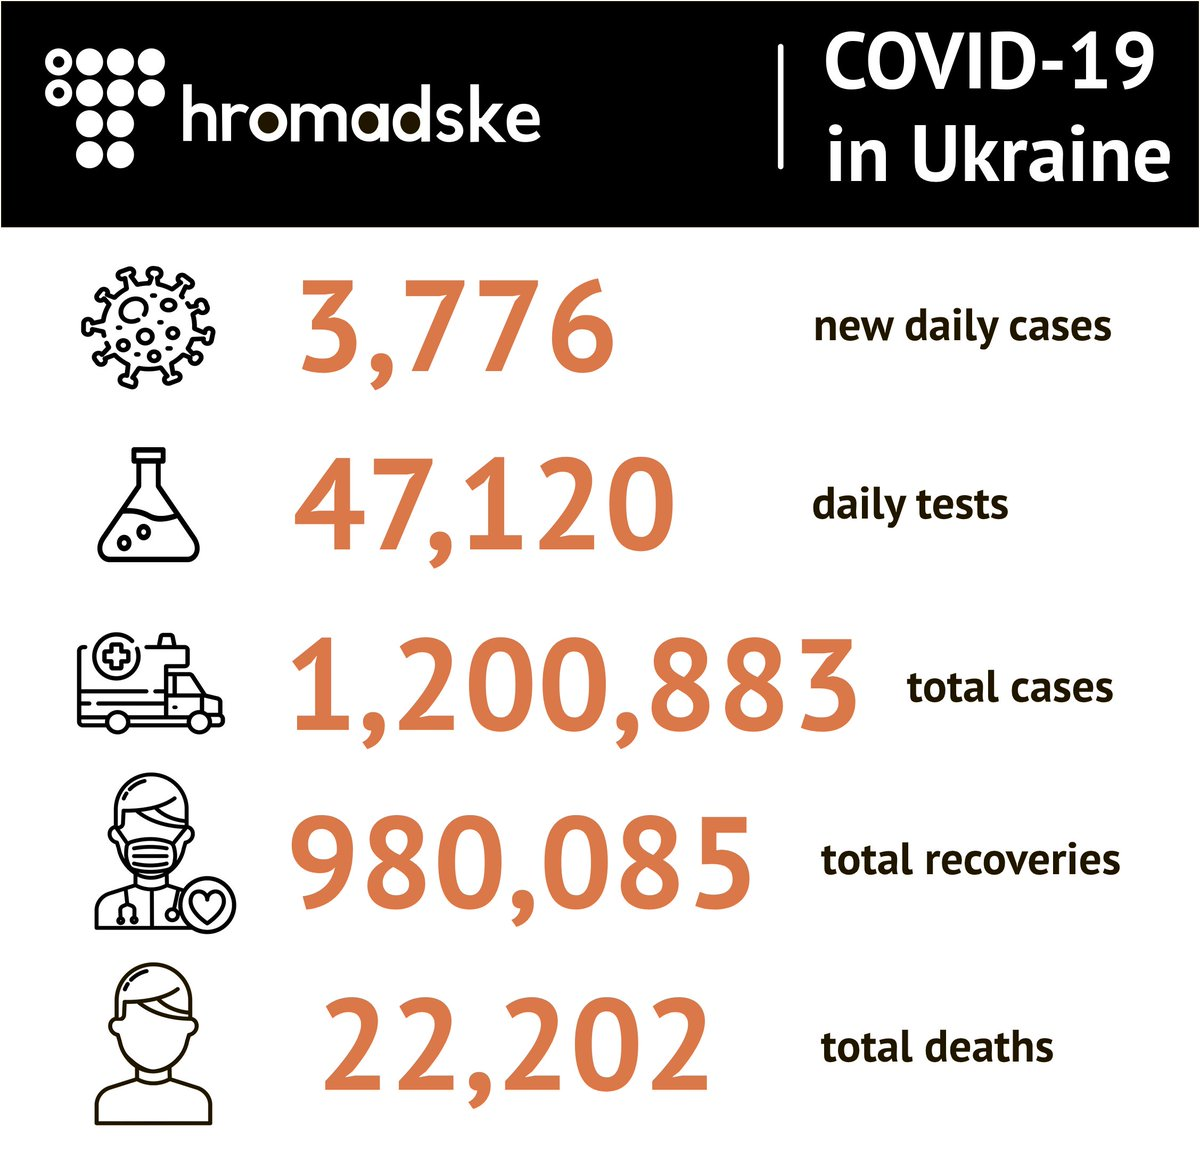 3,776 more people were diagnosed with #coronavirus In #Ukraine yesterday. 14,250 patients recovered & 145 died of complications, says Health Minister Maksym Stepanov.  A total of 1,200,883 COVID cases have been confirmed, w/ 980,085 recoveries and 22,202 deaths from complications